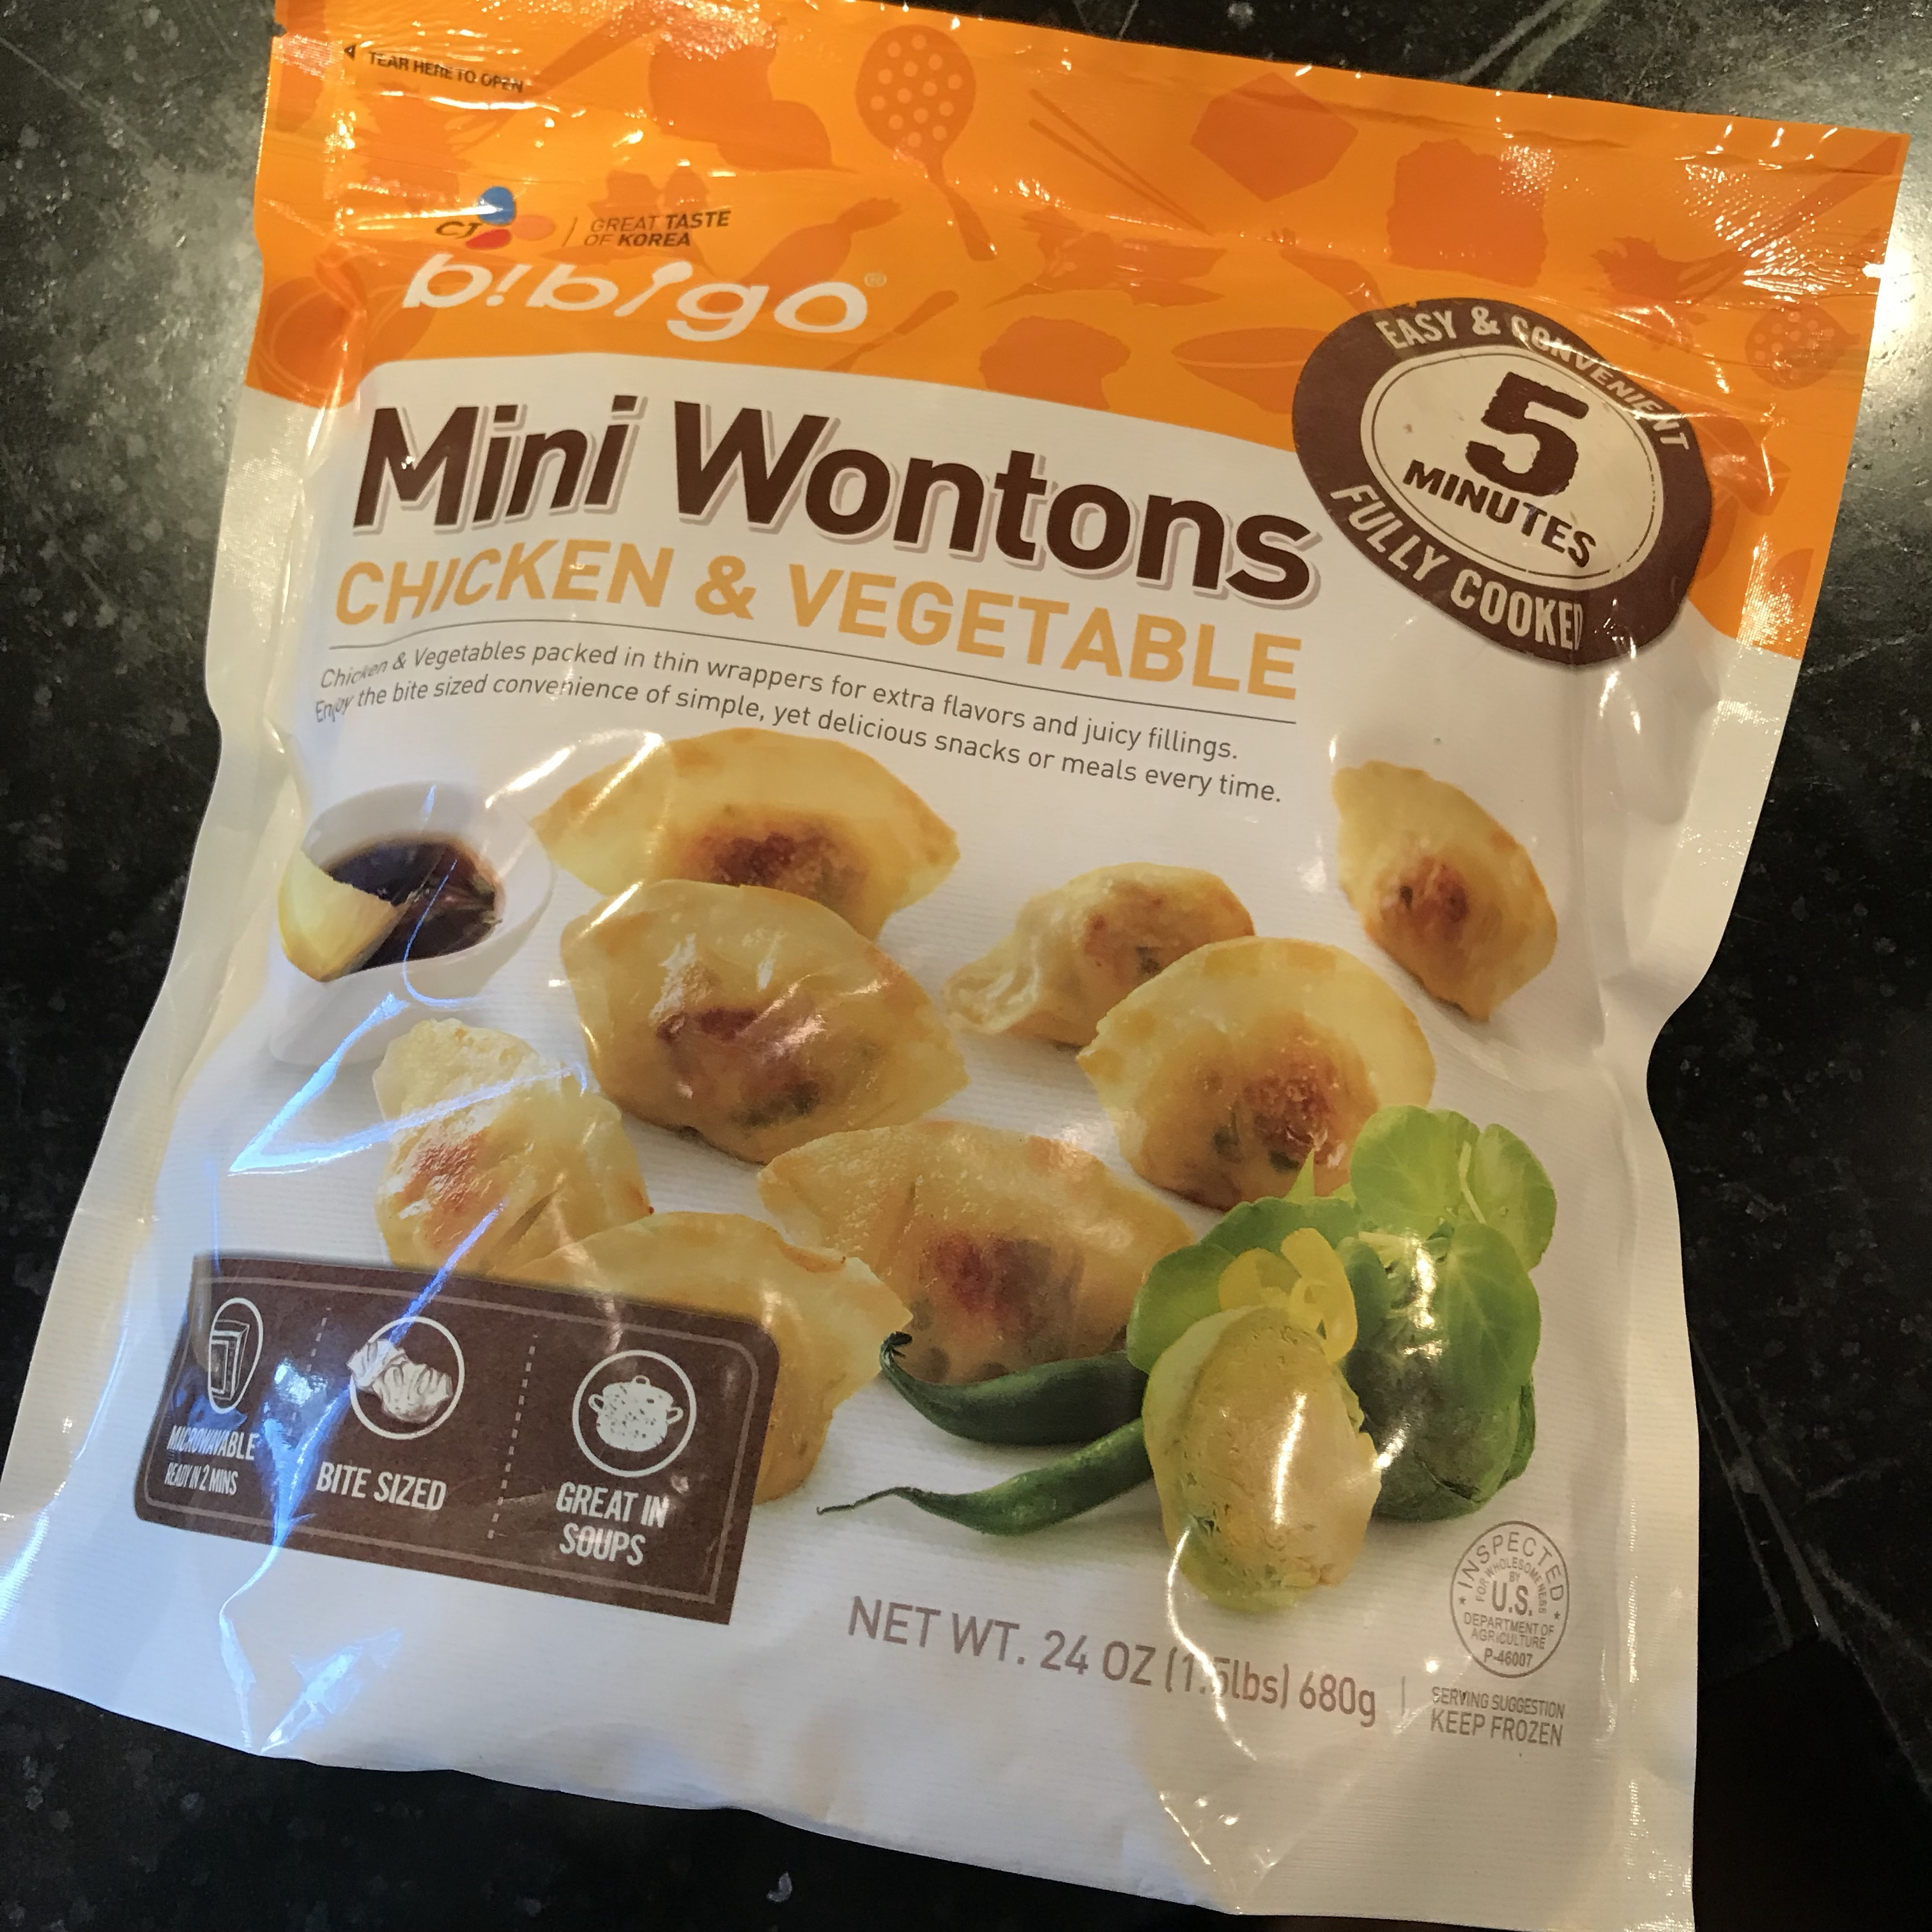 Mini Wontons in Spicy Broth